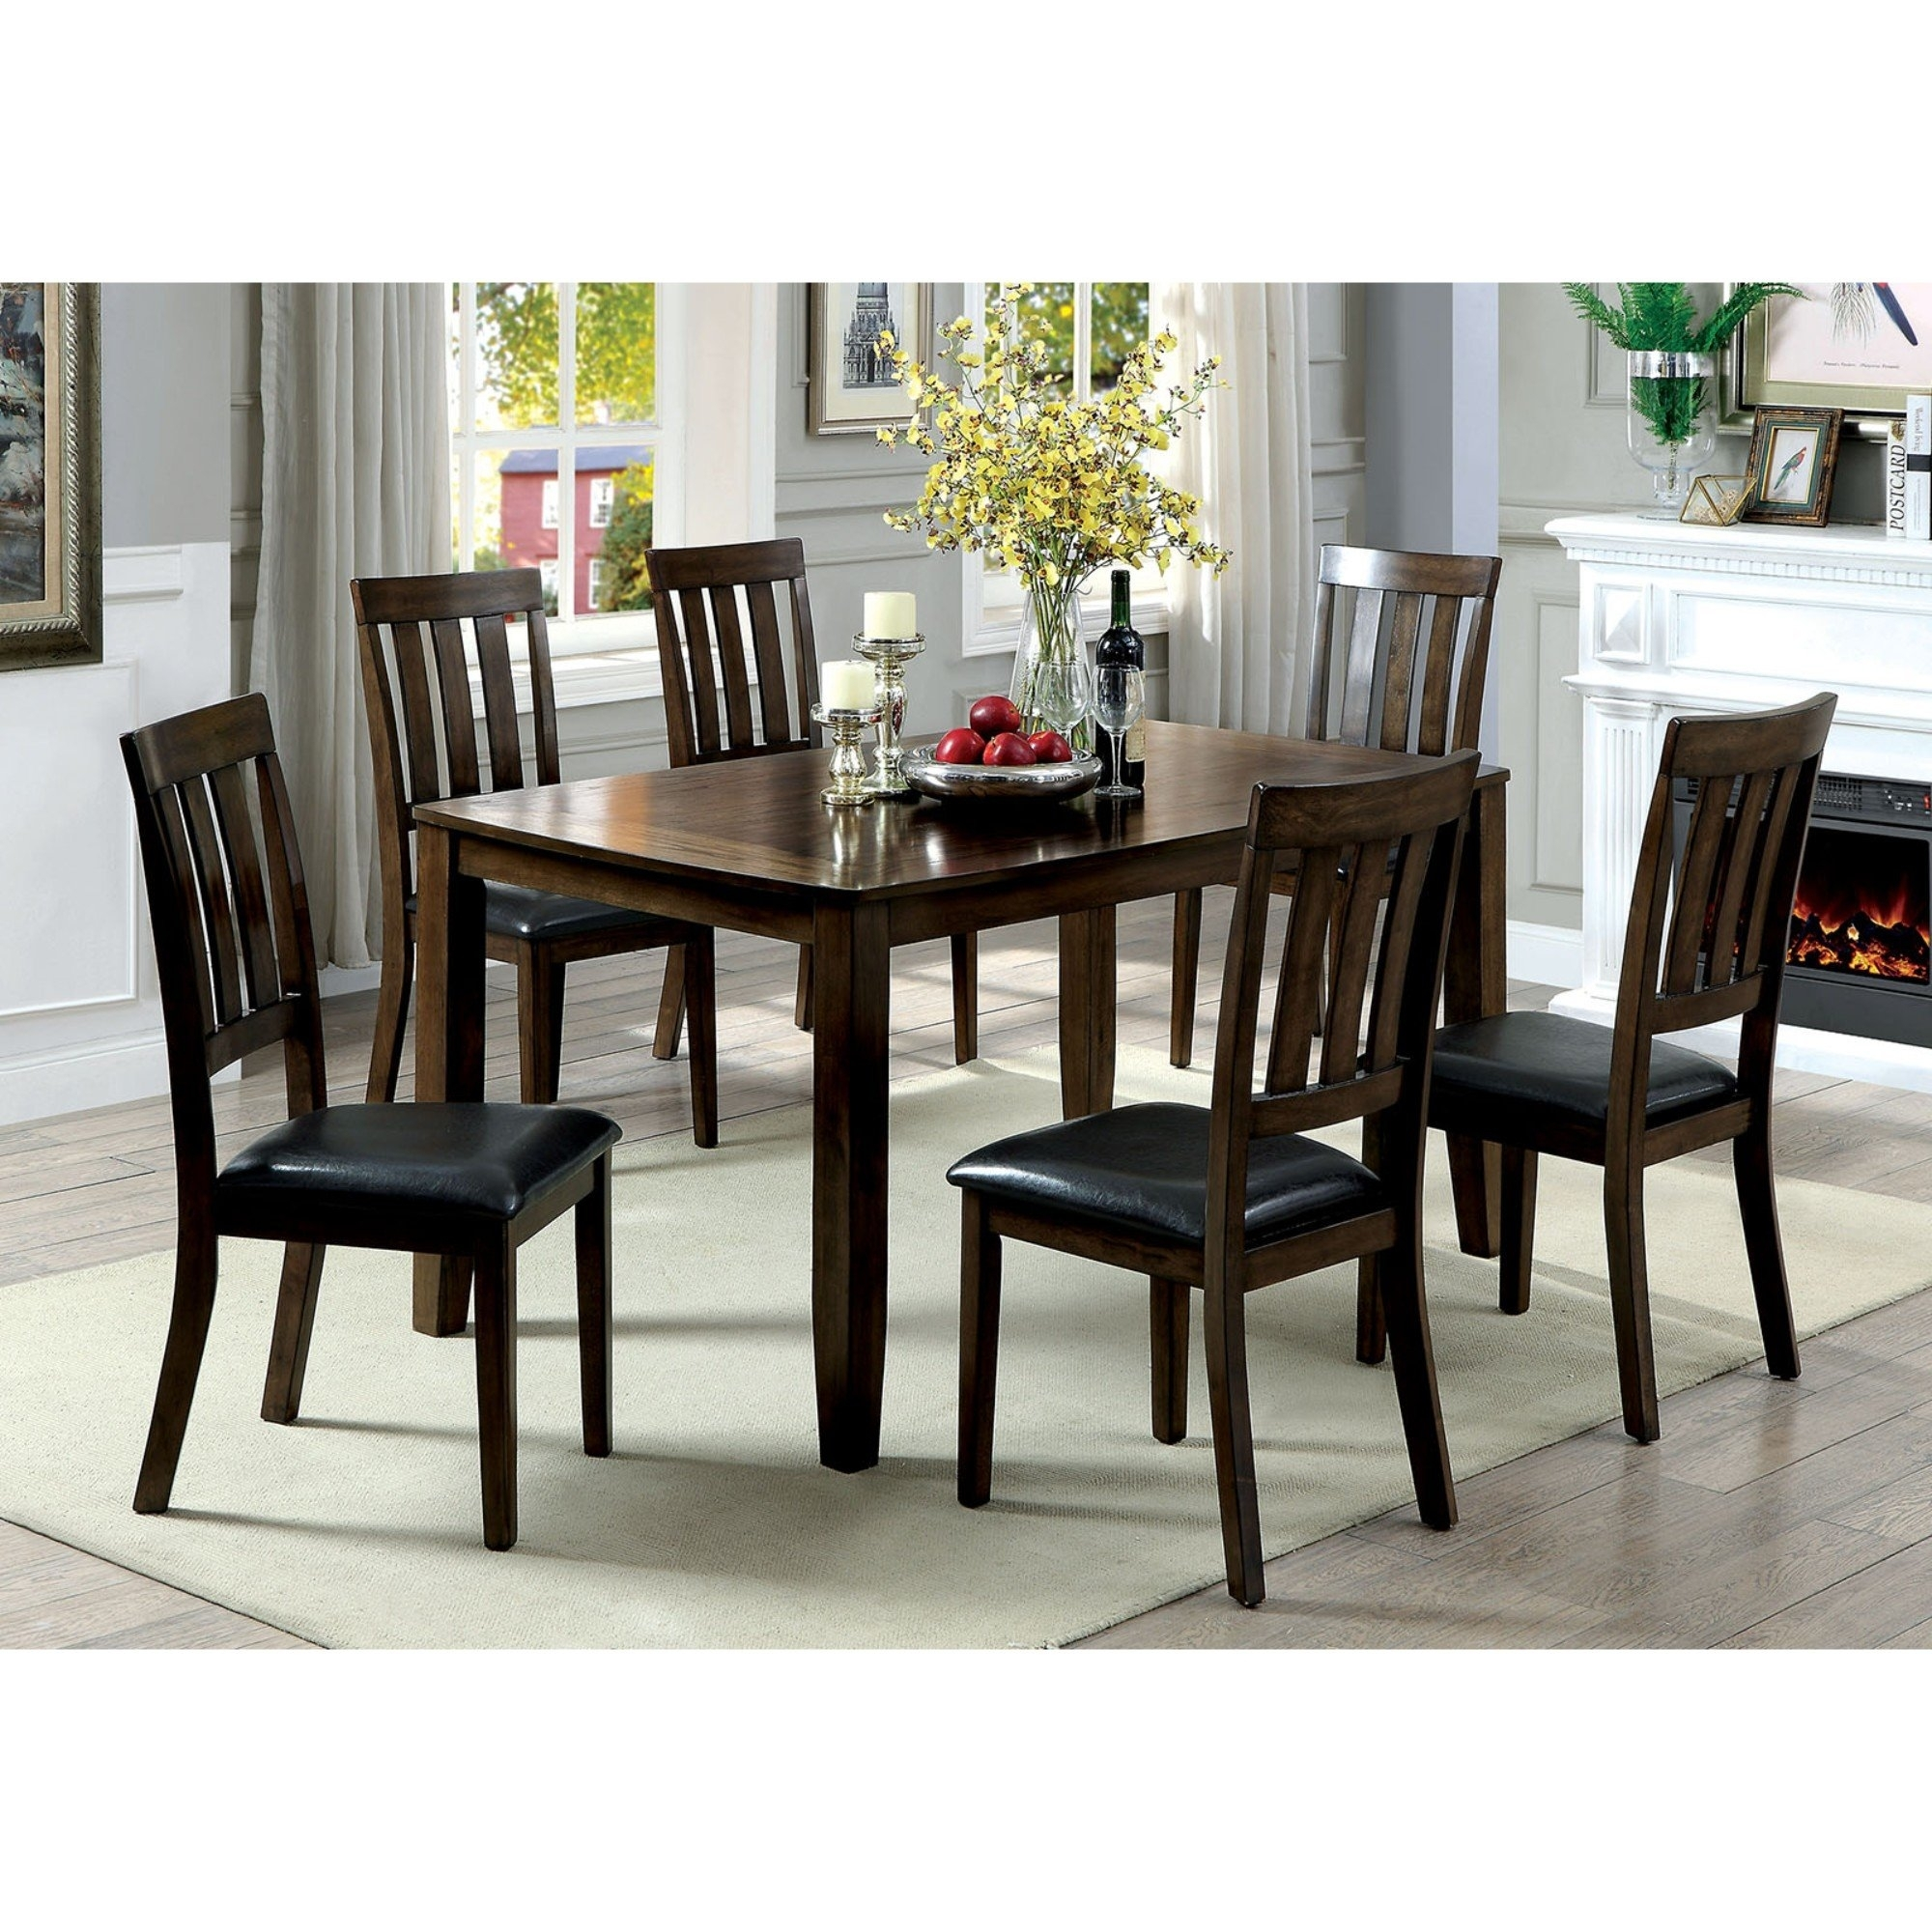 Millwood Pines Devon Wooden 7 Piece Counter Height Dining Table Set Intended For 2017 Candice Ii 5 Piece Round Dining Sets With Slat Back Side Chairs (Image 10 of 20)